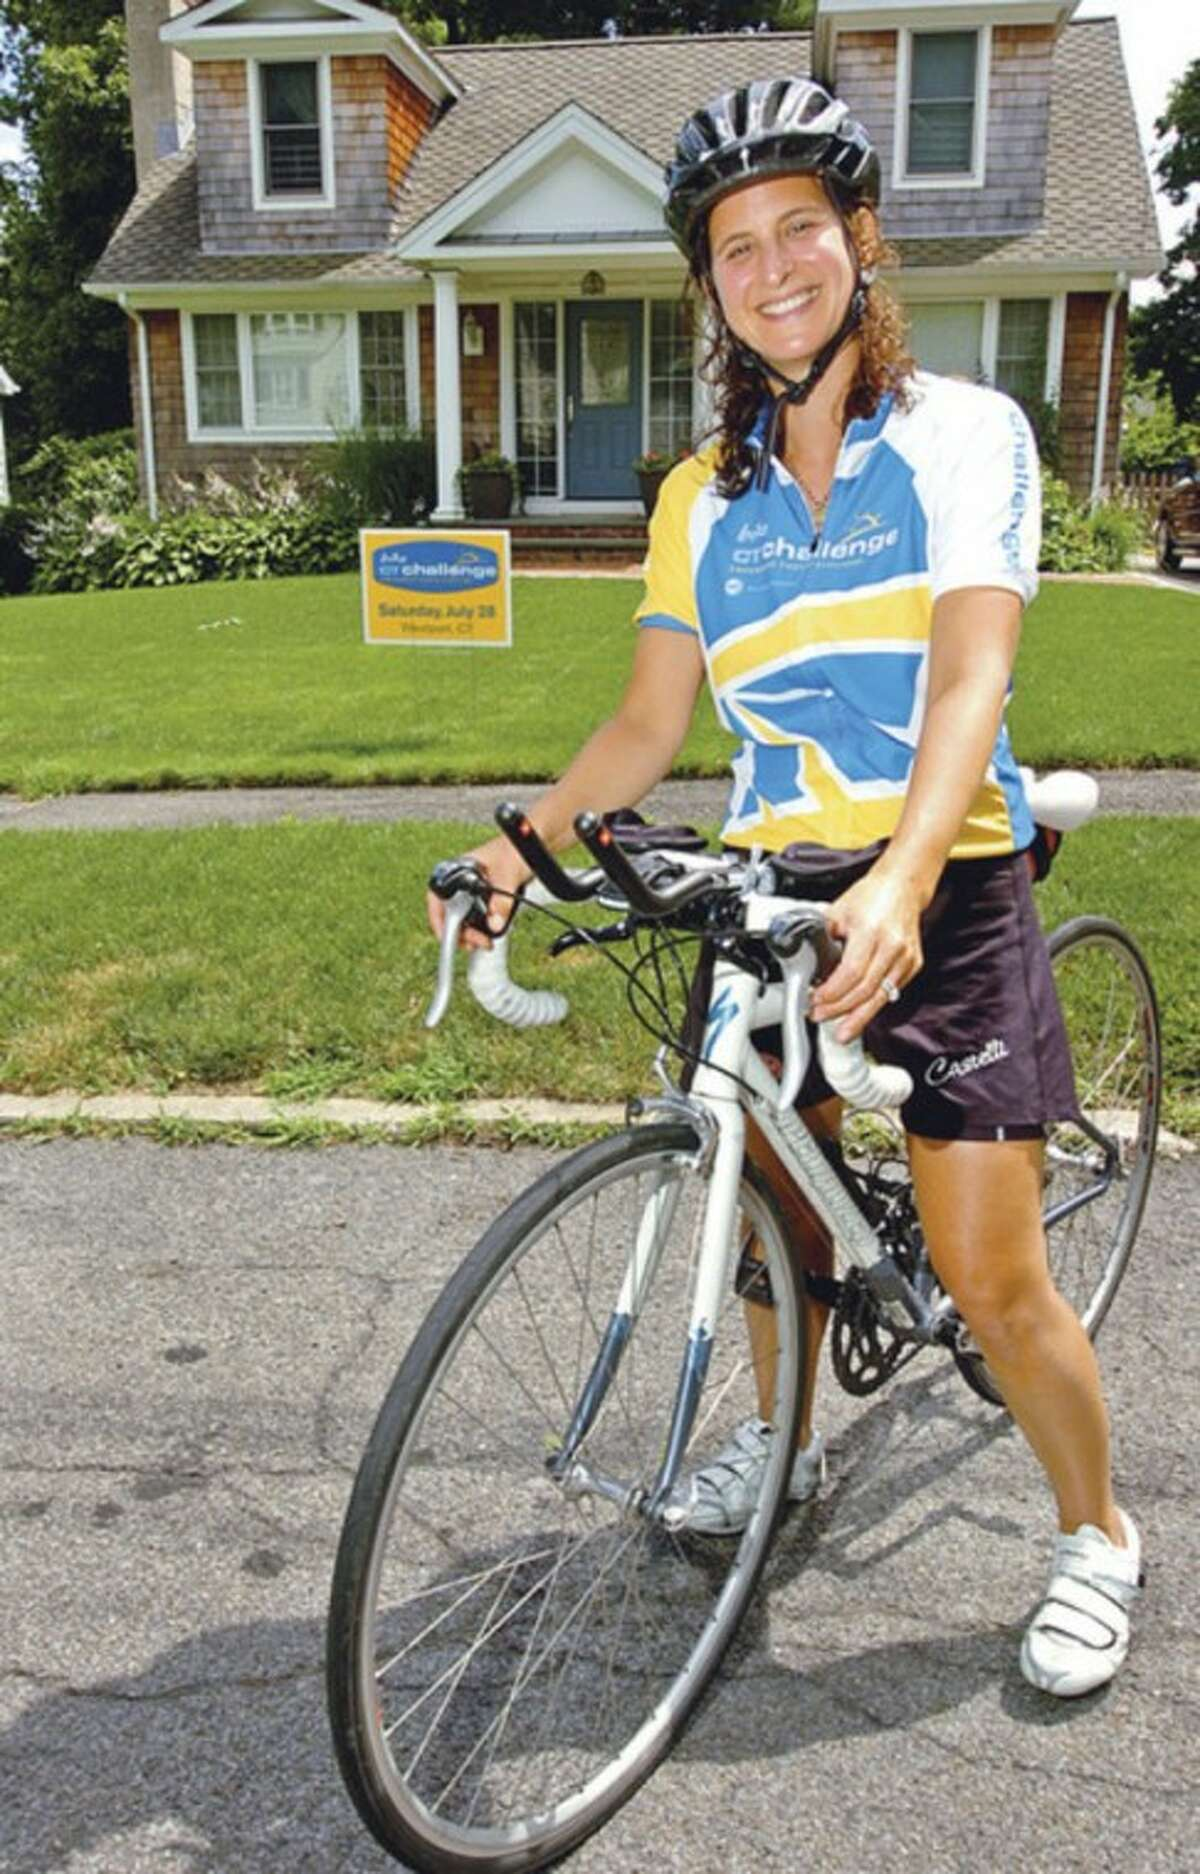 Aimee Elsner is going to participate in the CT Challenge bike ride on July 28 to benefit local programs for cancer patients. Elsner was diagnosed with stage 2 breast cancer in 2009, and has endured four surgeries, as well as chemotherapy and radiation. Since her last surgery in 2010, she has completed four triathlons. Photo by Erik Trautmann